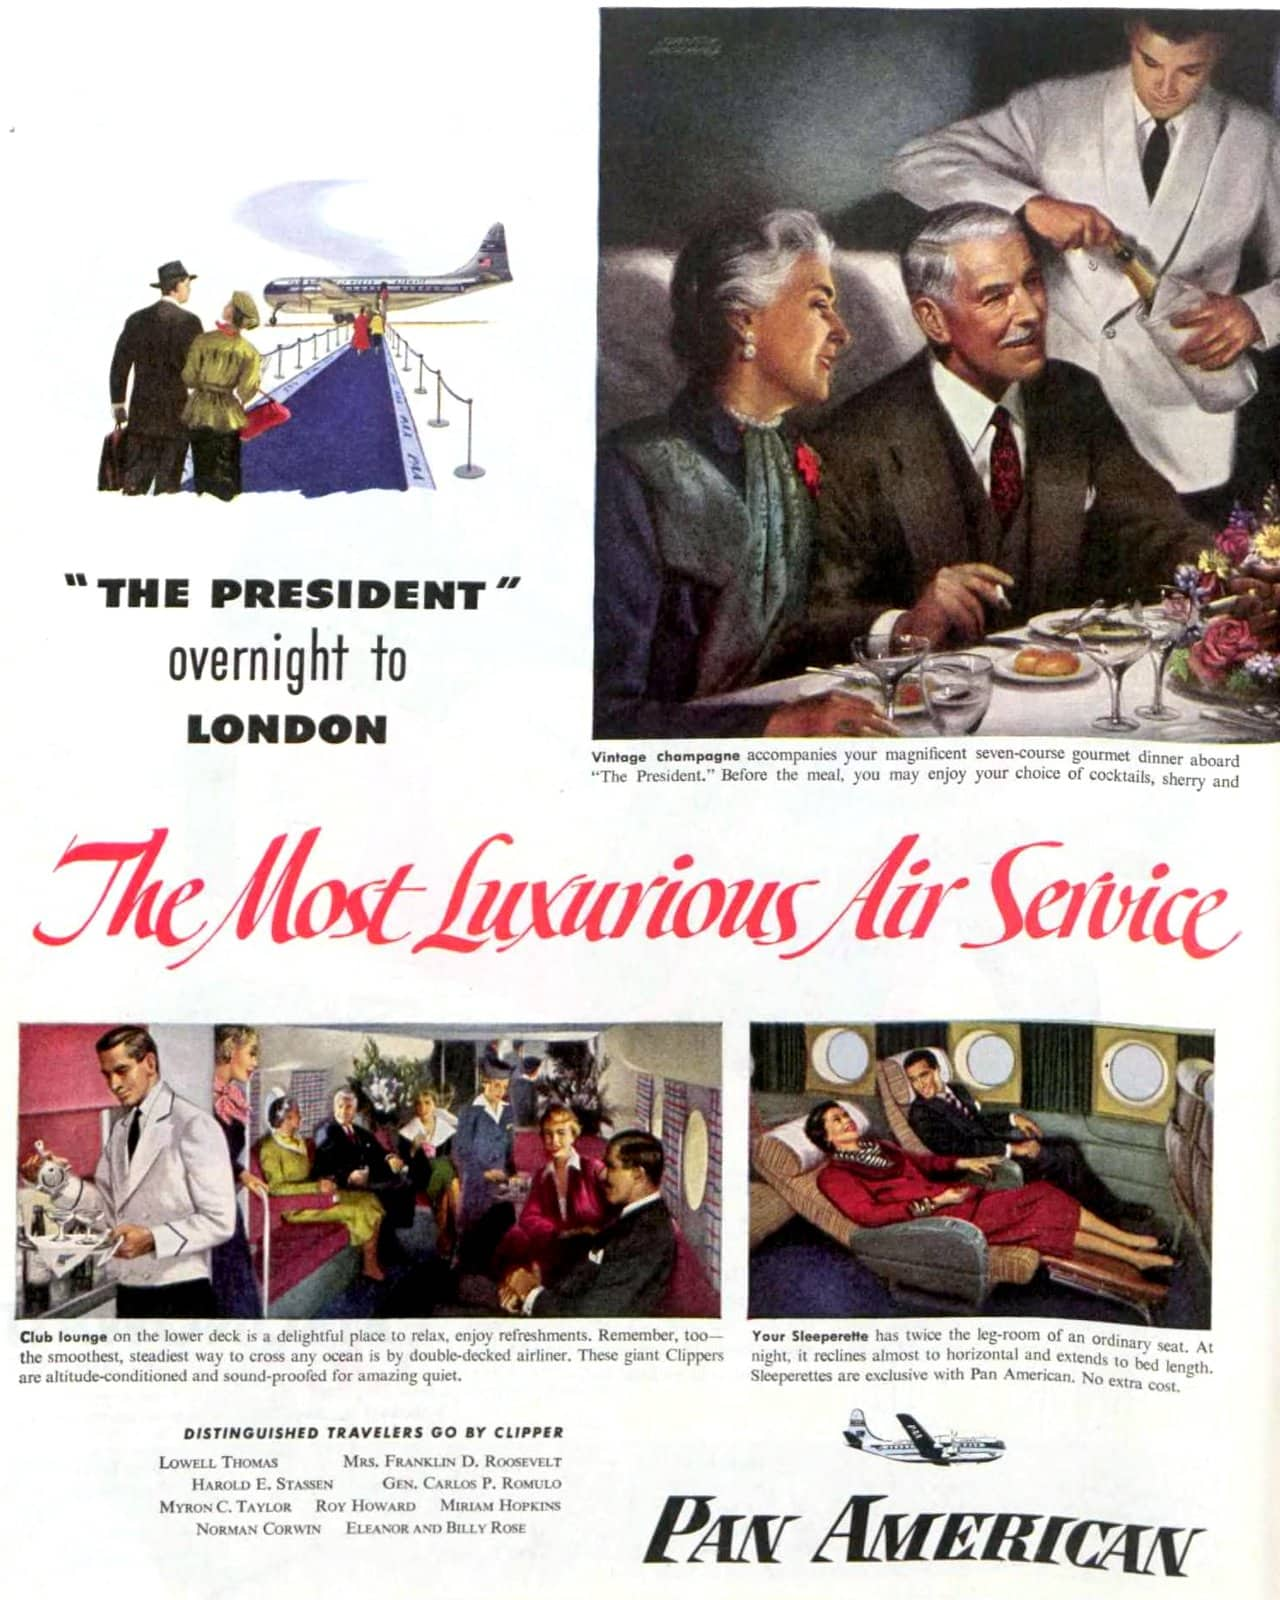 Vintage Pan-American Airlines - Luxurious air service (1950)